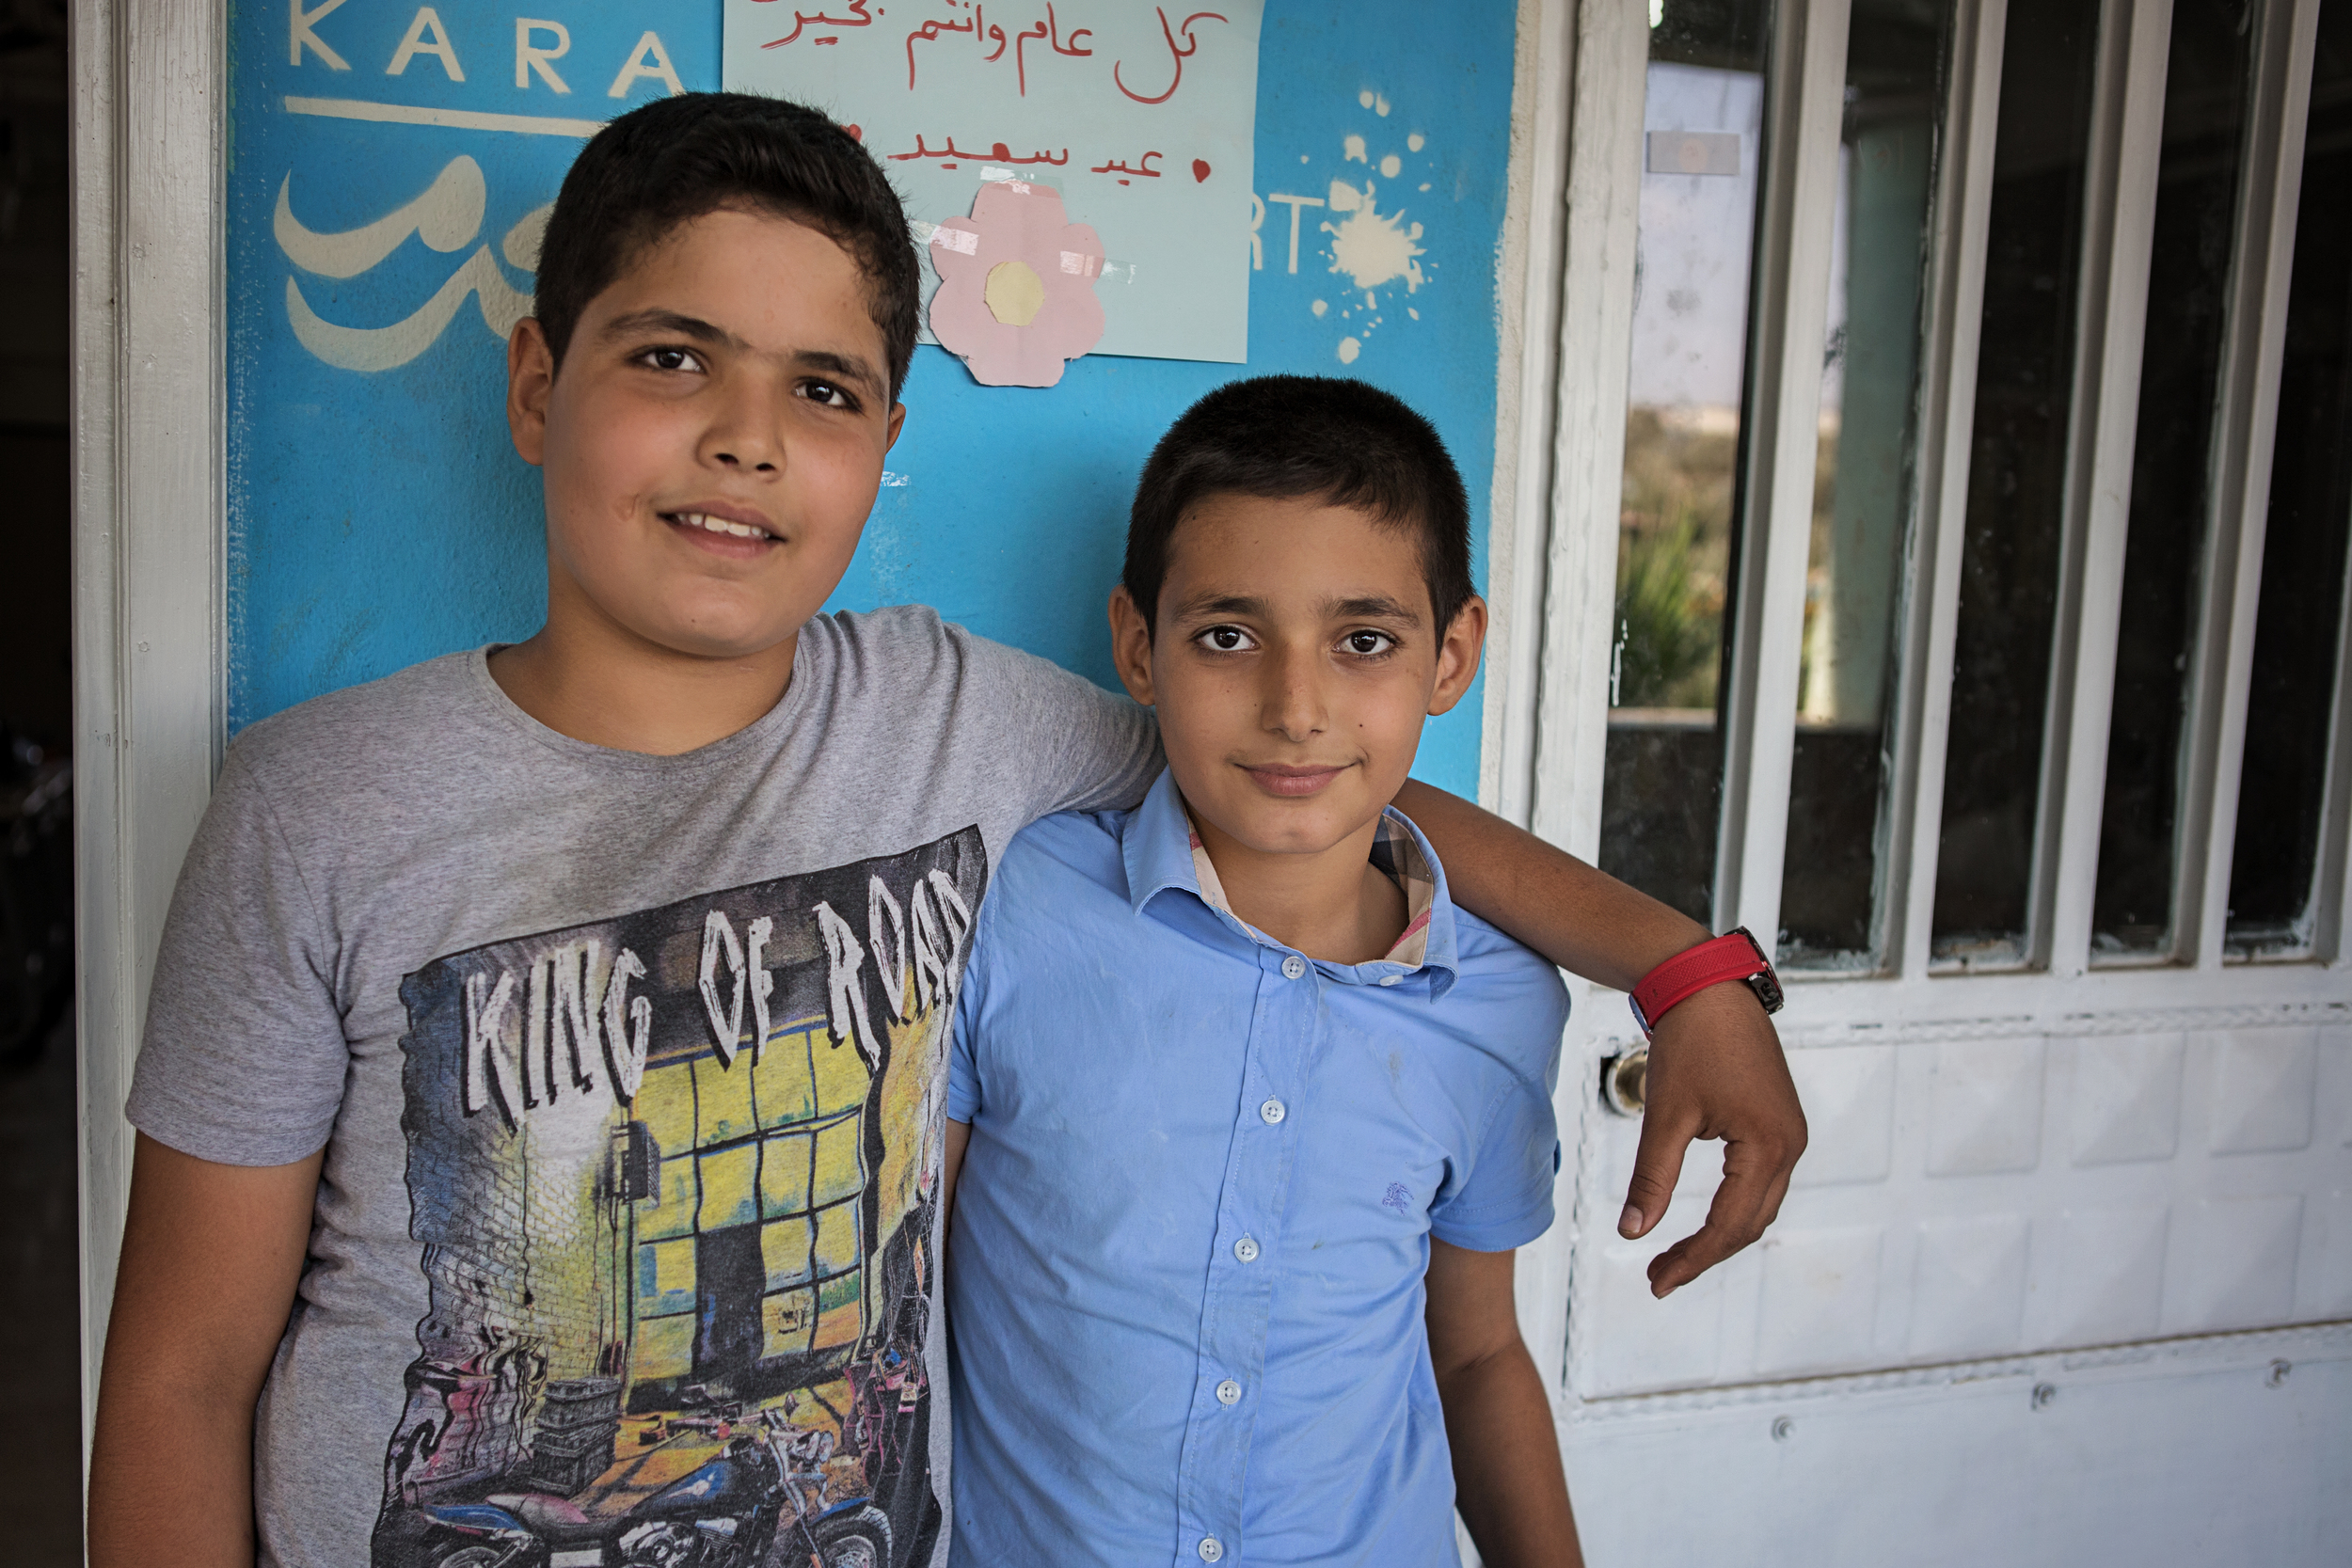 Ibrahim and Nadim   Before meeting Karam Foundation in 2015, we were both working 12-hour shifts 6 days a week. Nadim was working in glassblower's shop and Ibrahim worked at a sweets shop. After joining Karam's SSRF program we were able to quit our jobs and go back to school. Since starting school, our behavior has really improved. We've joined Karam House and we study hard – we have very good grades.